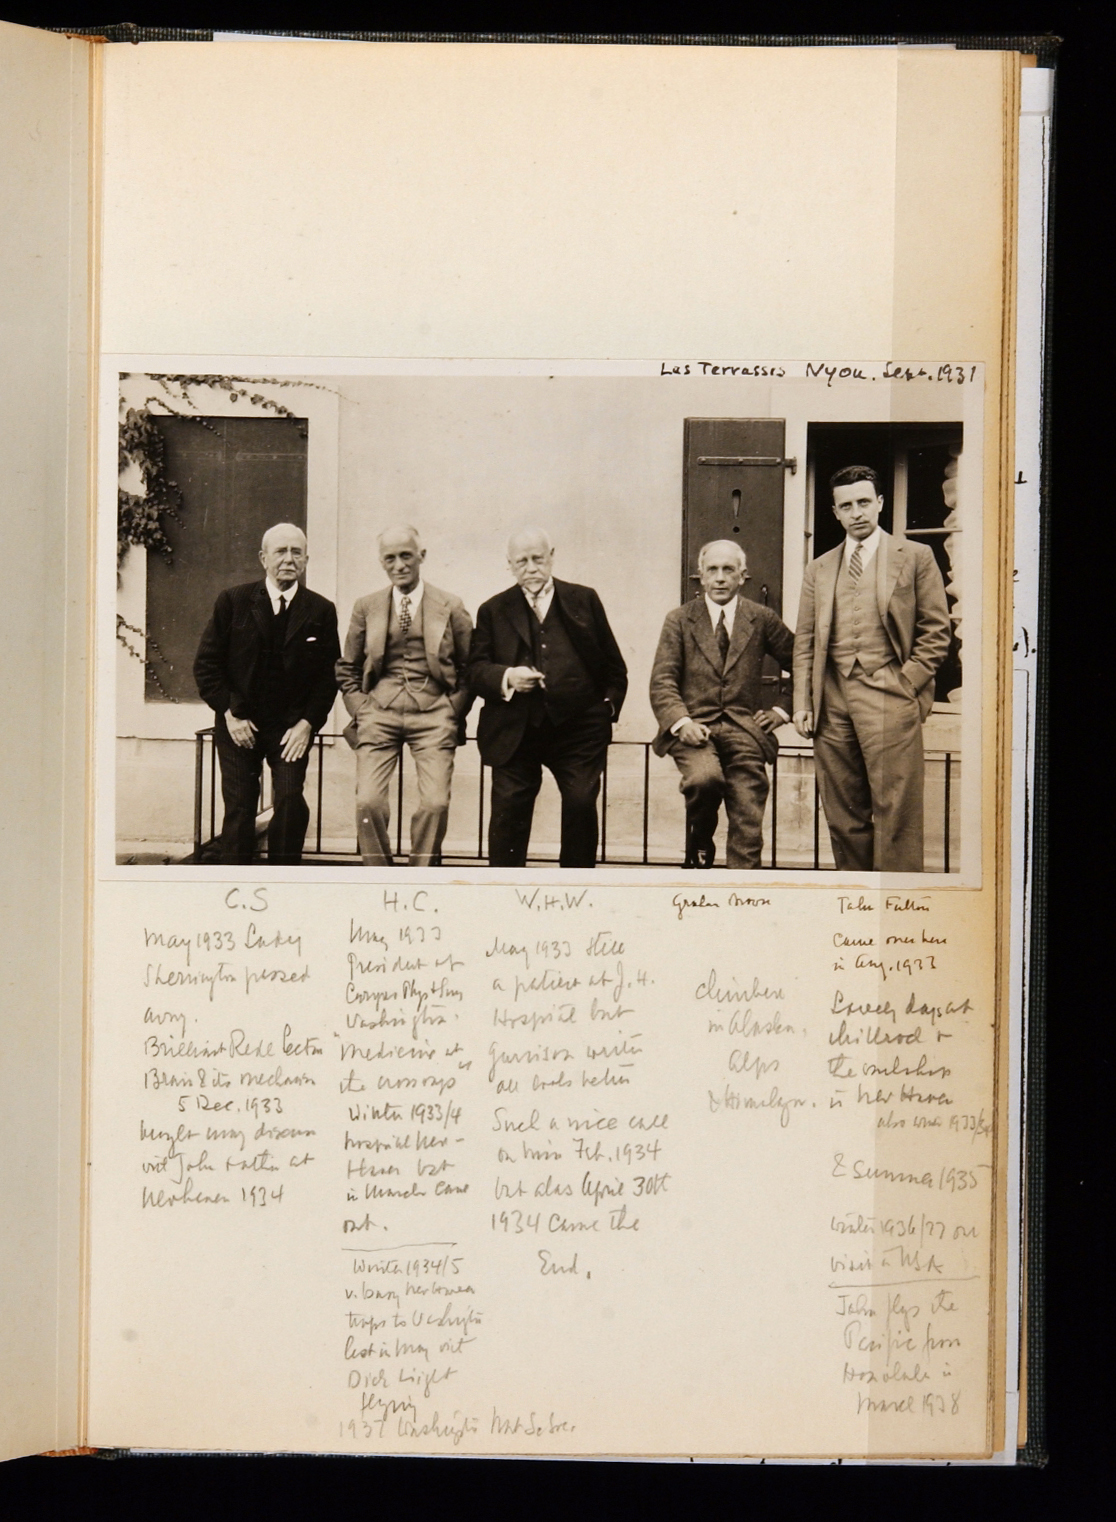 Image of library founders on a journal page with written notes